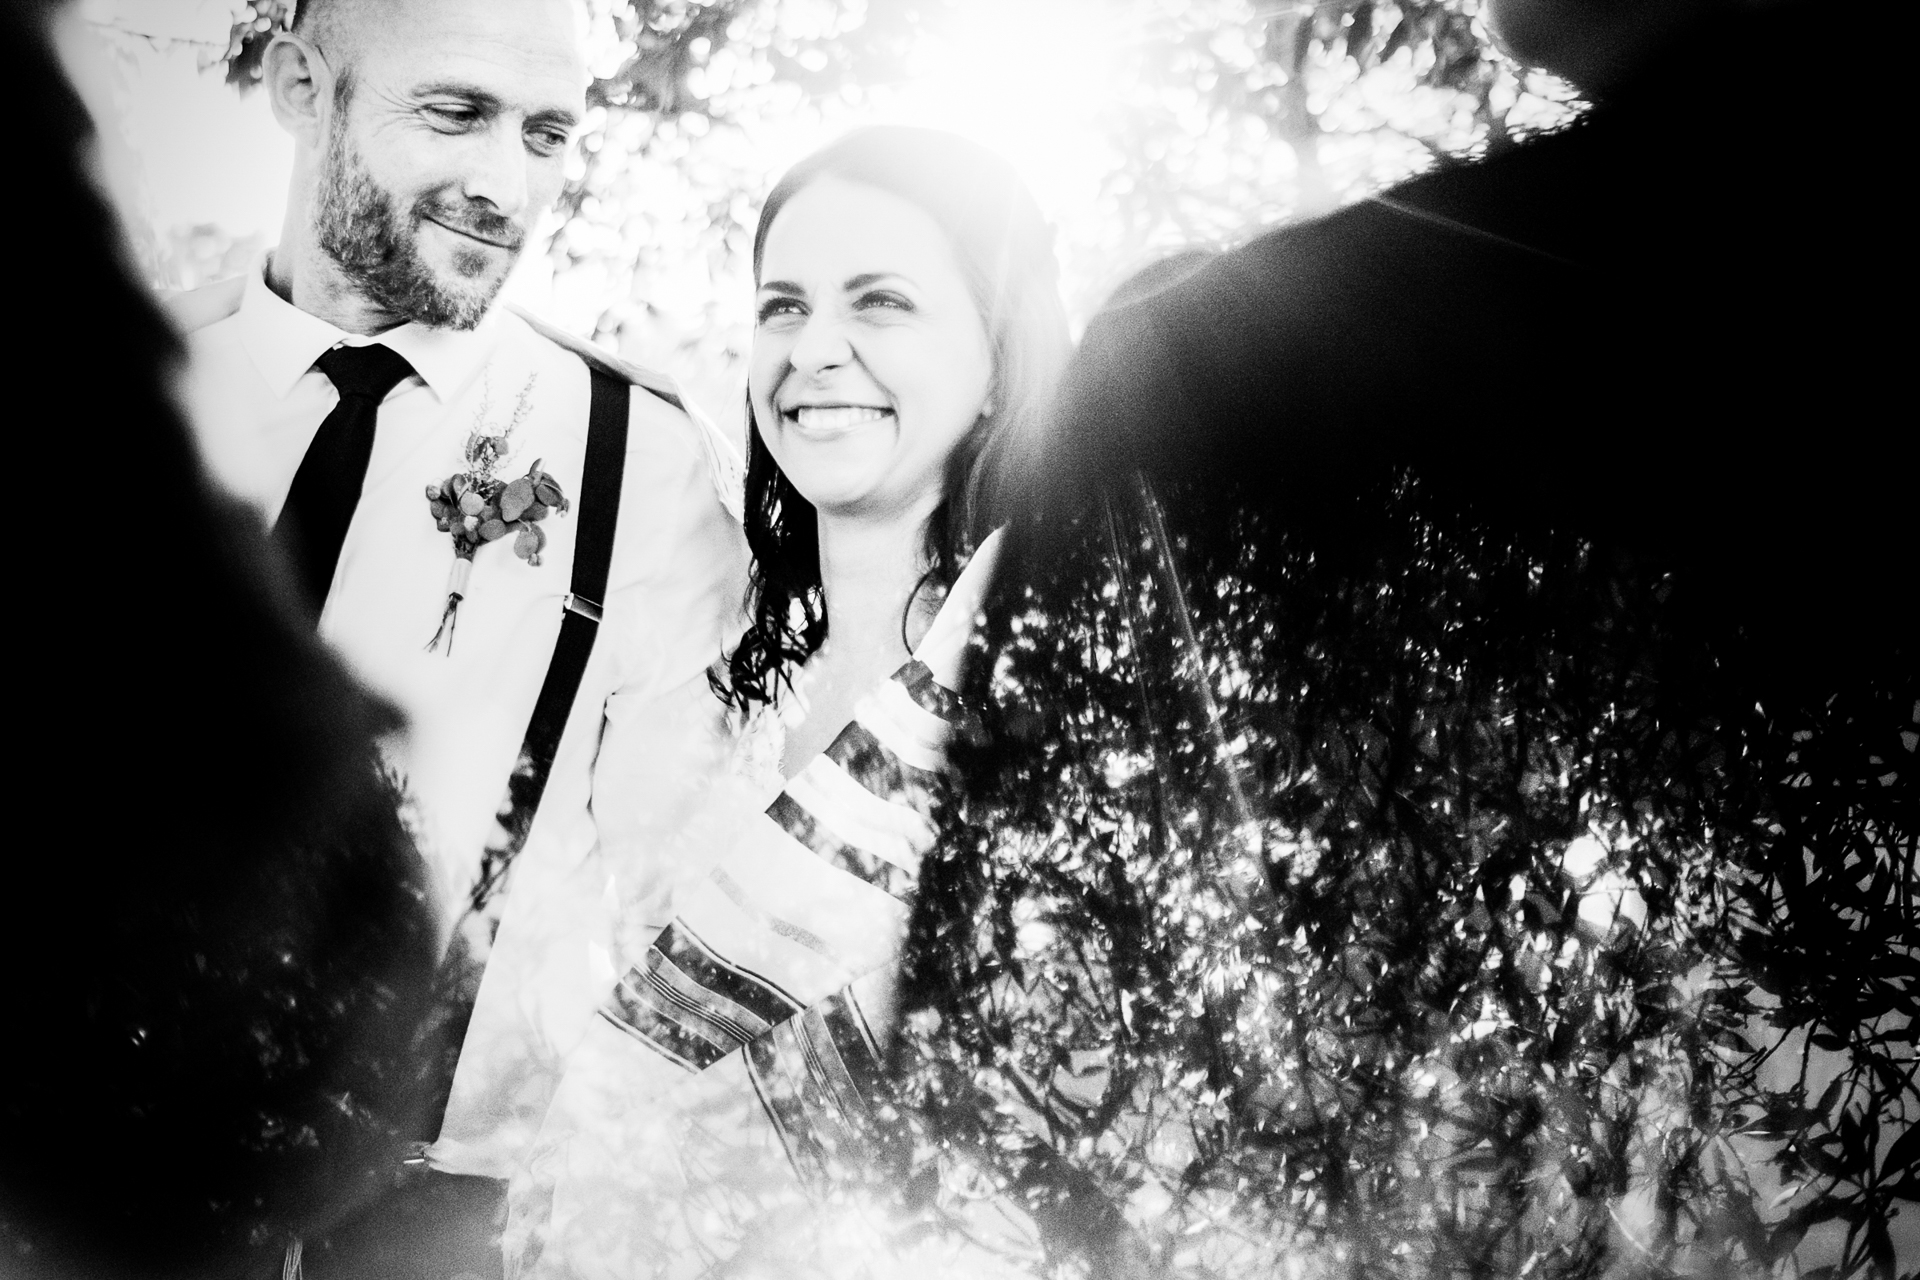 South Africa Outdoor Elopement Ceremony Photos | The groom looks lovingly at his new bride